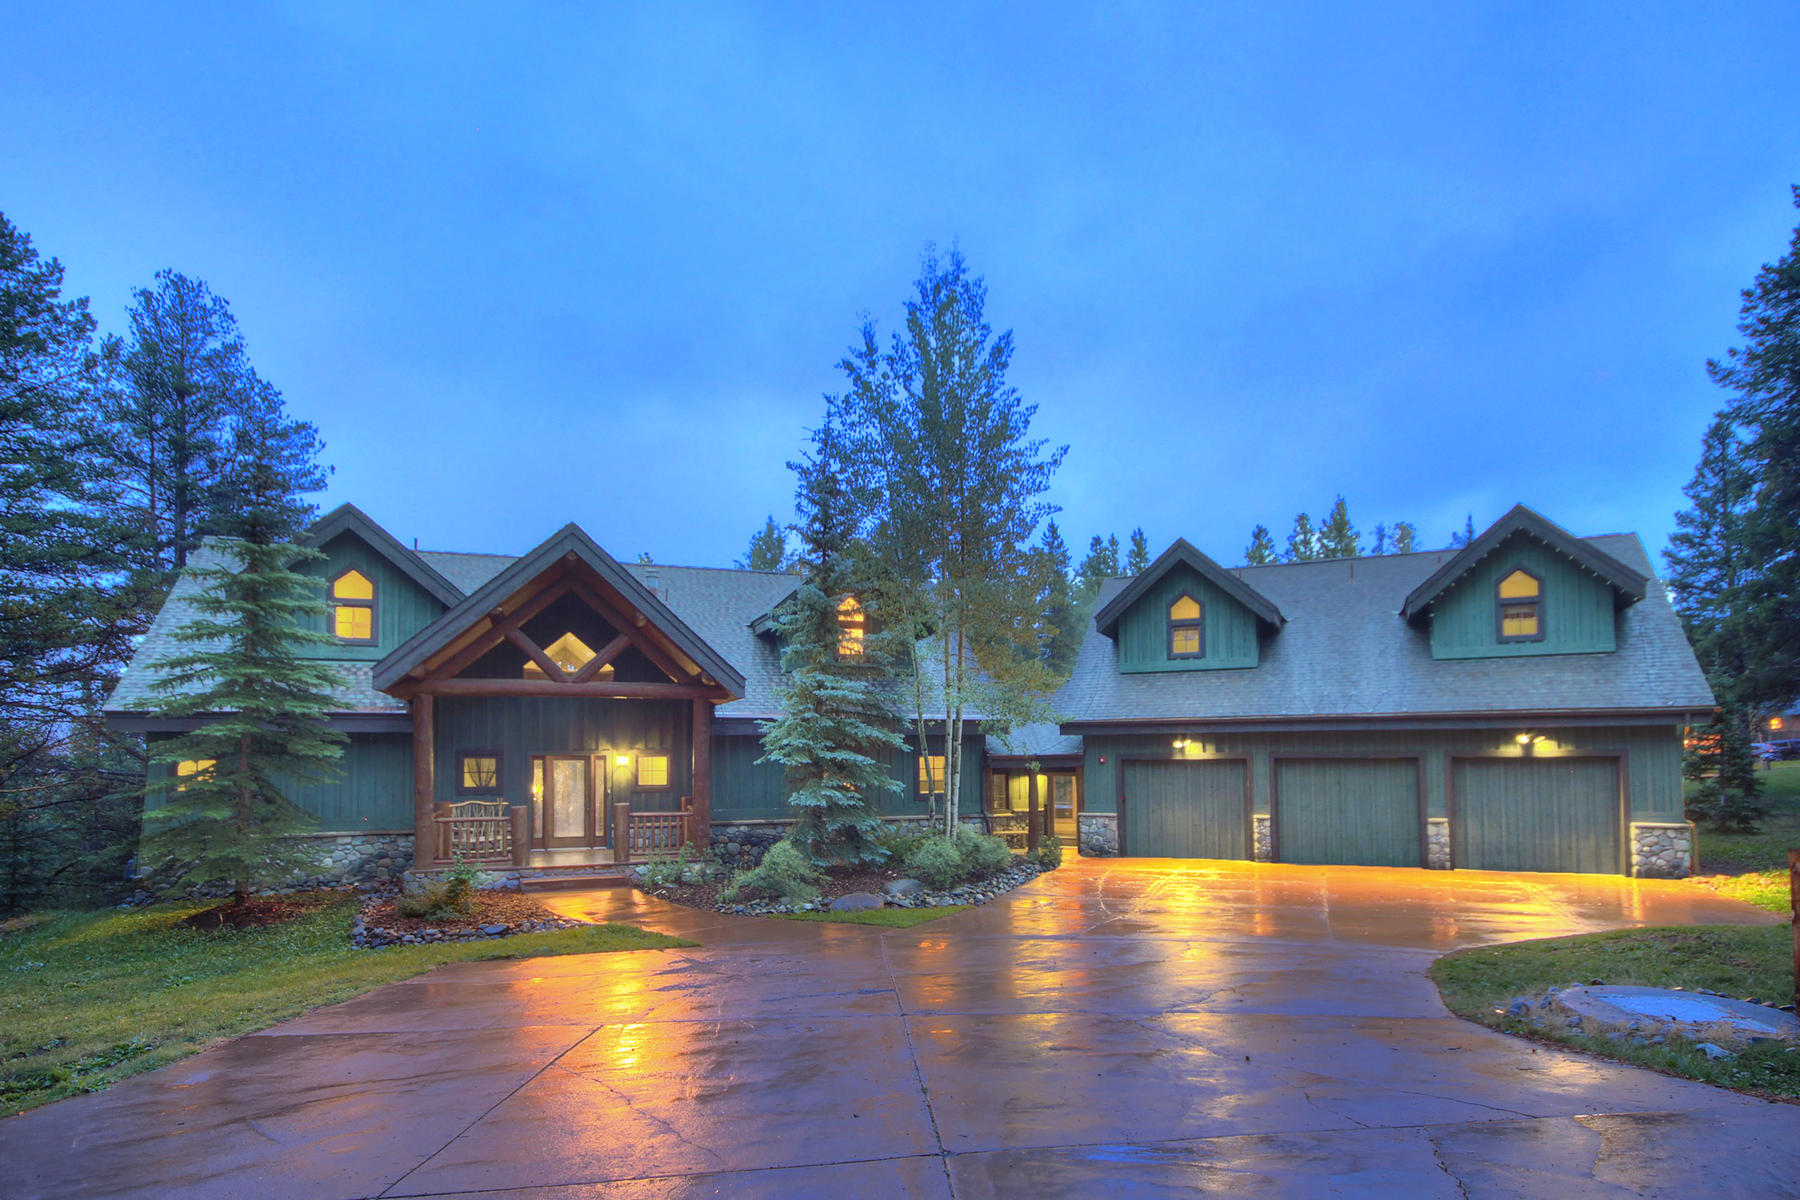 Single Family Home for Active at Nordic Ski Mountain Home 113 Willow Lane Breckenridge, Colorado 80424 United States